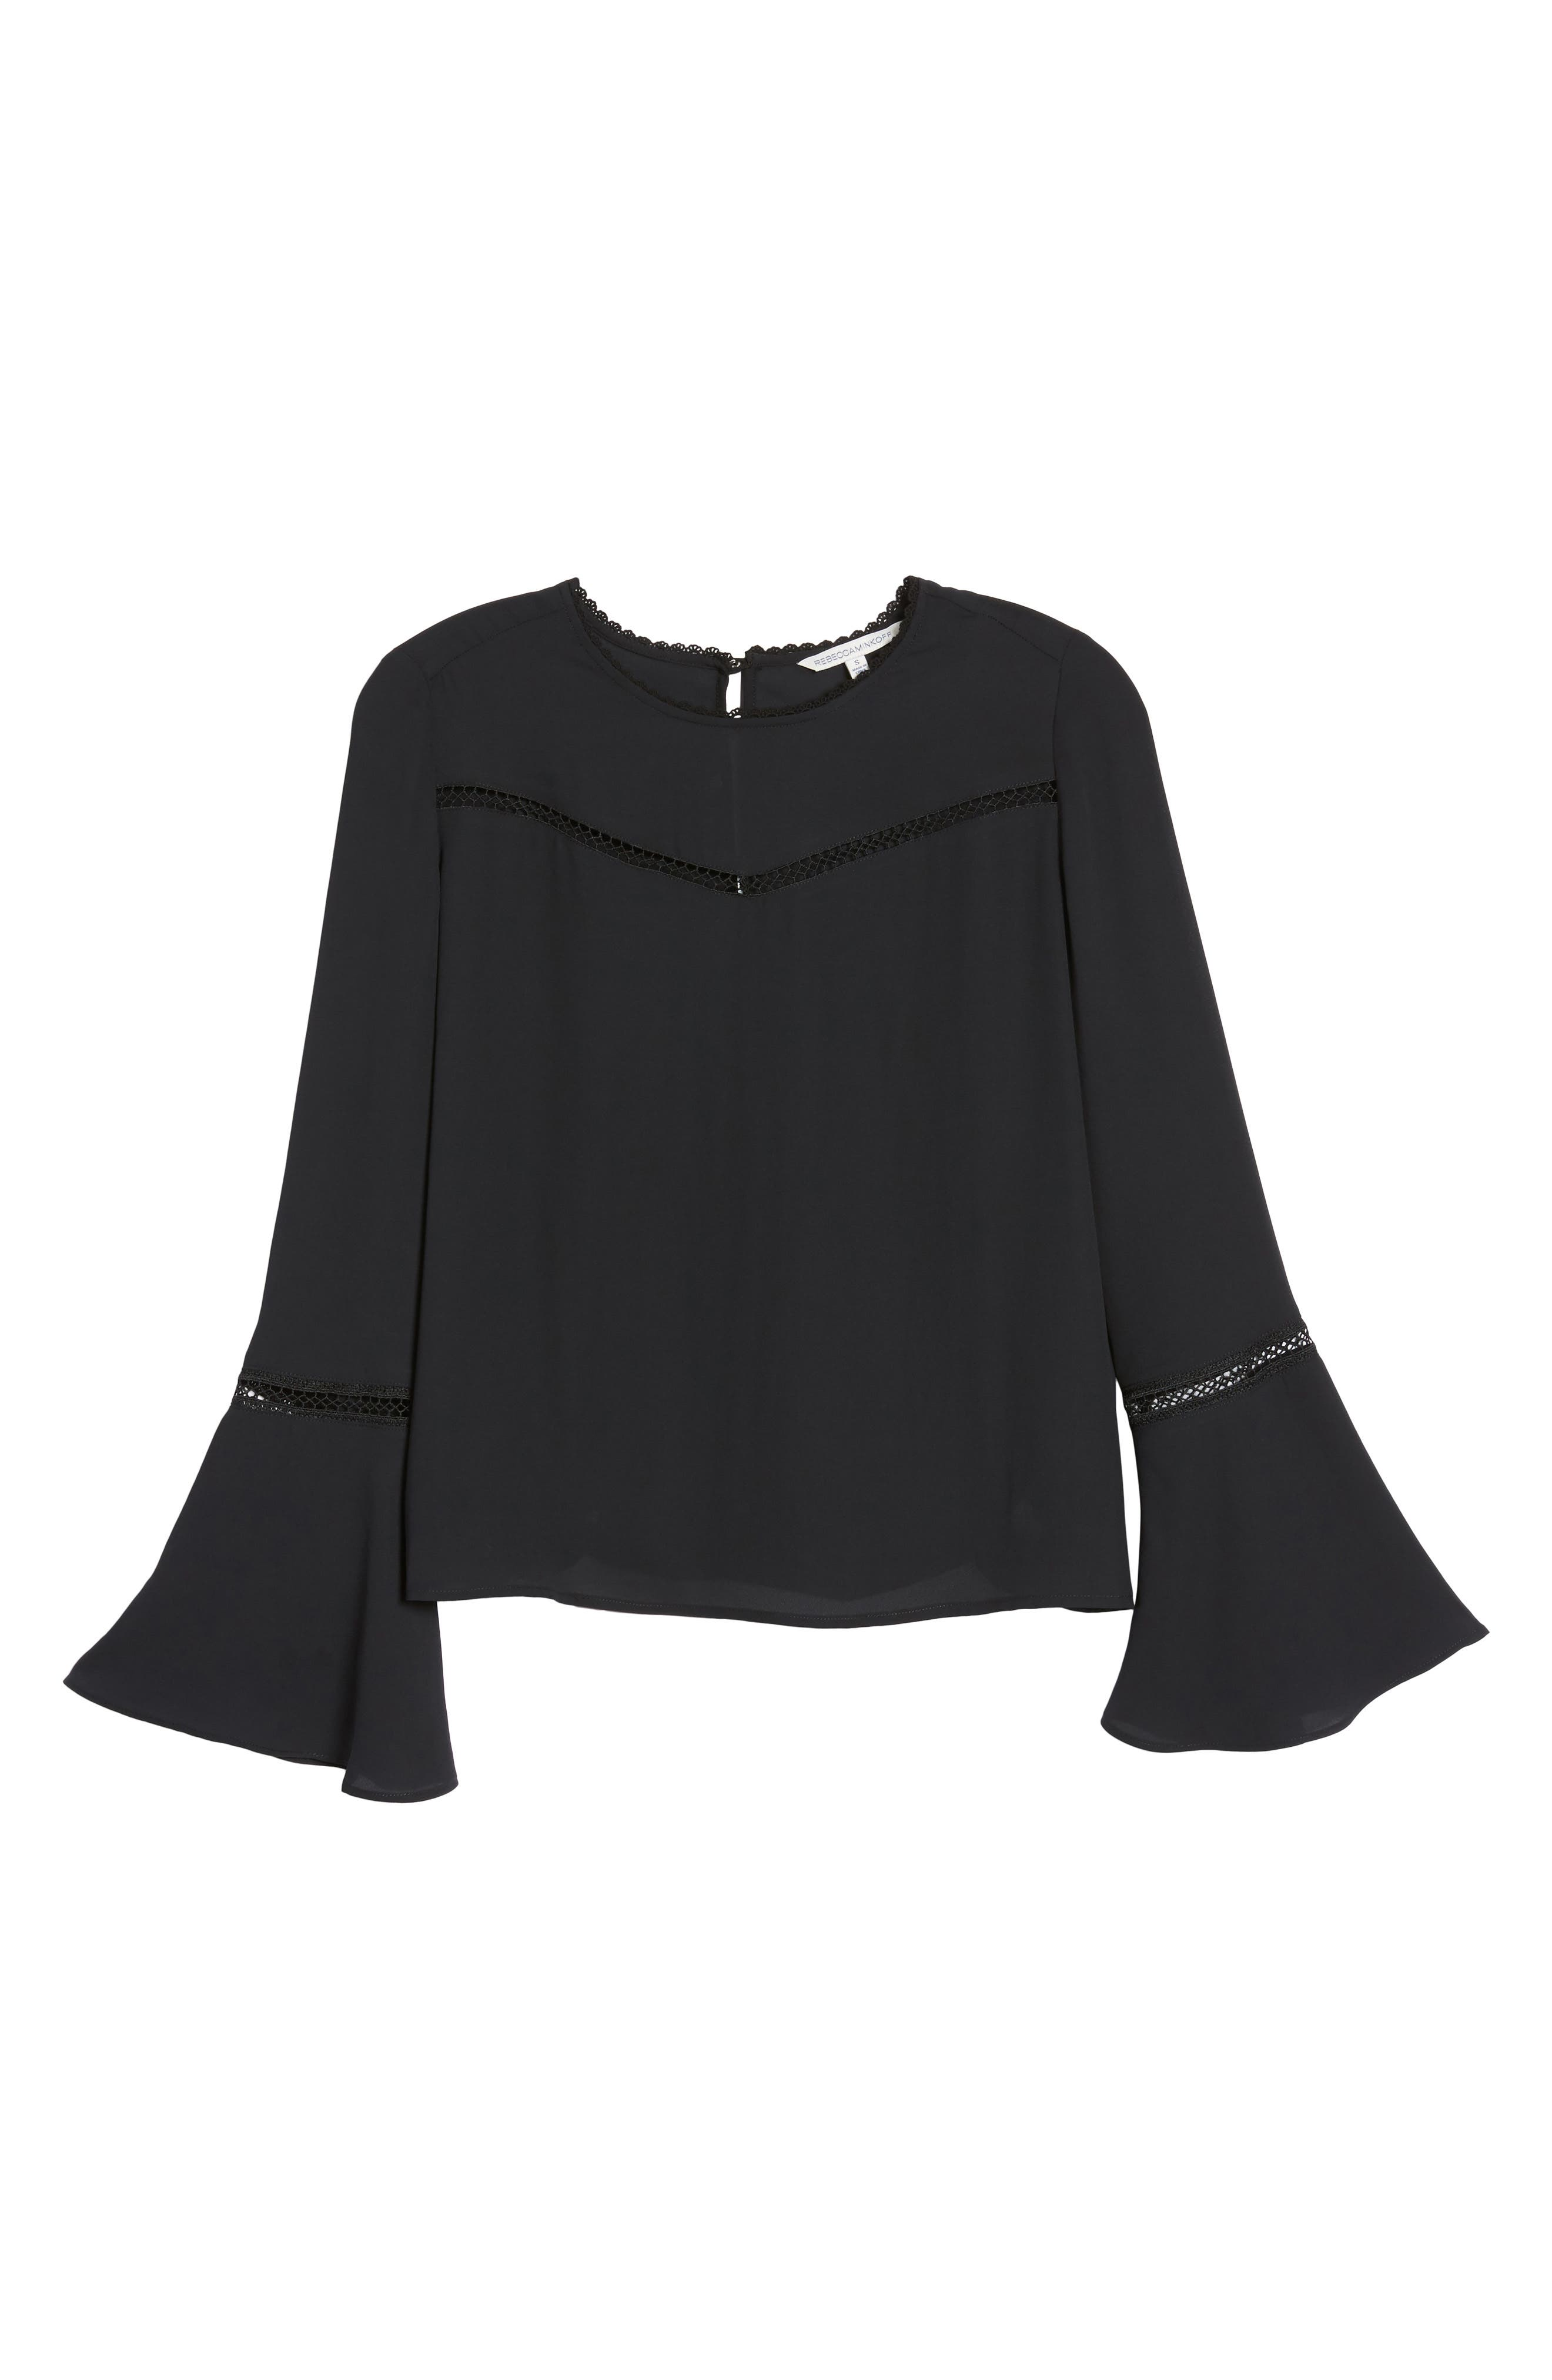 Chava Bell Sleeve Top,                             Alternate thumbnail 6, color,                             001